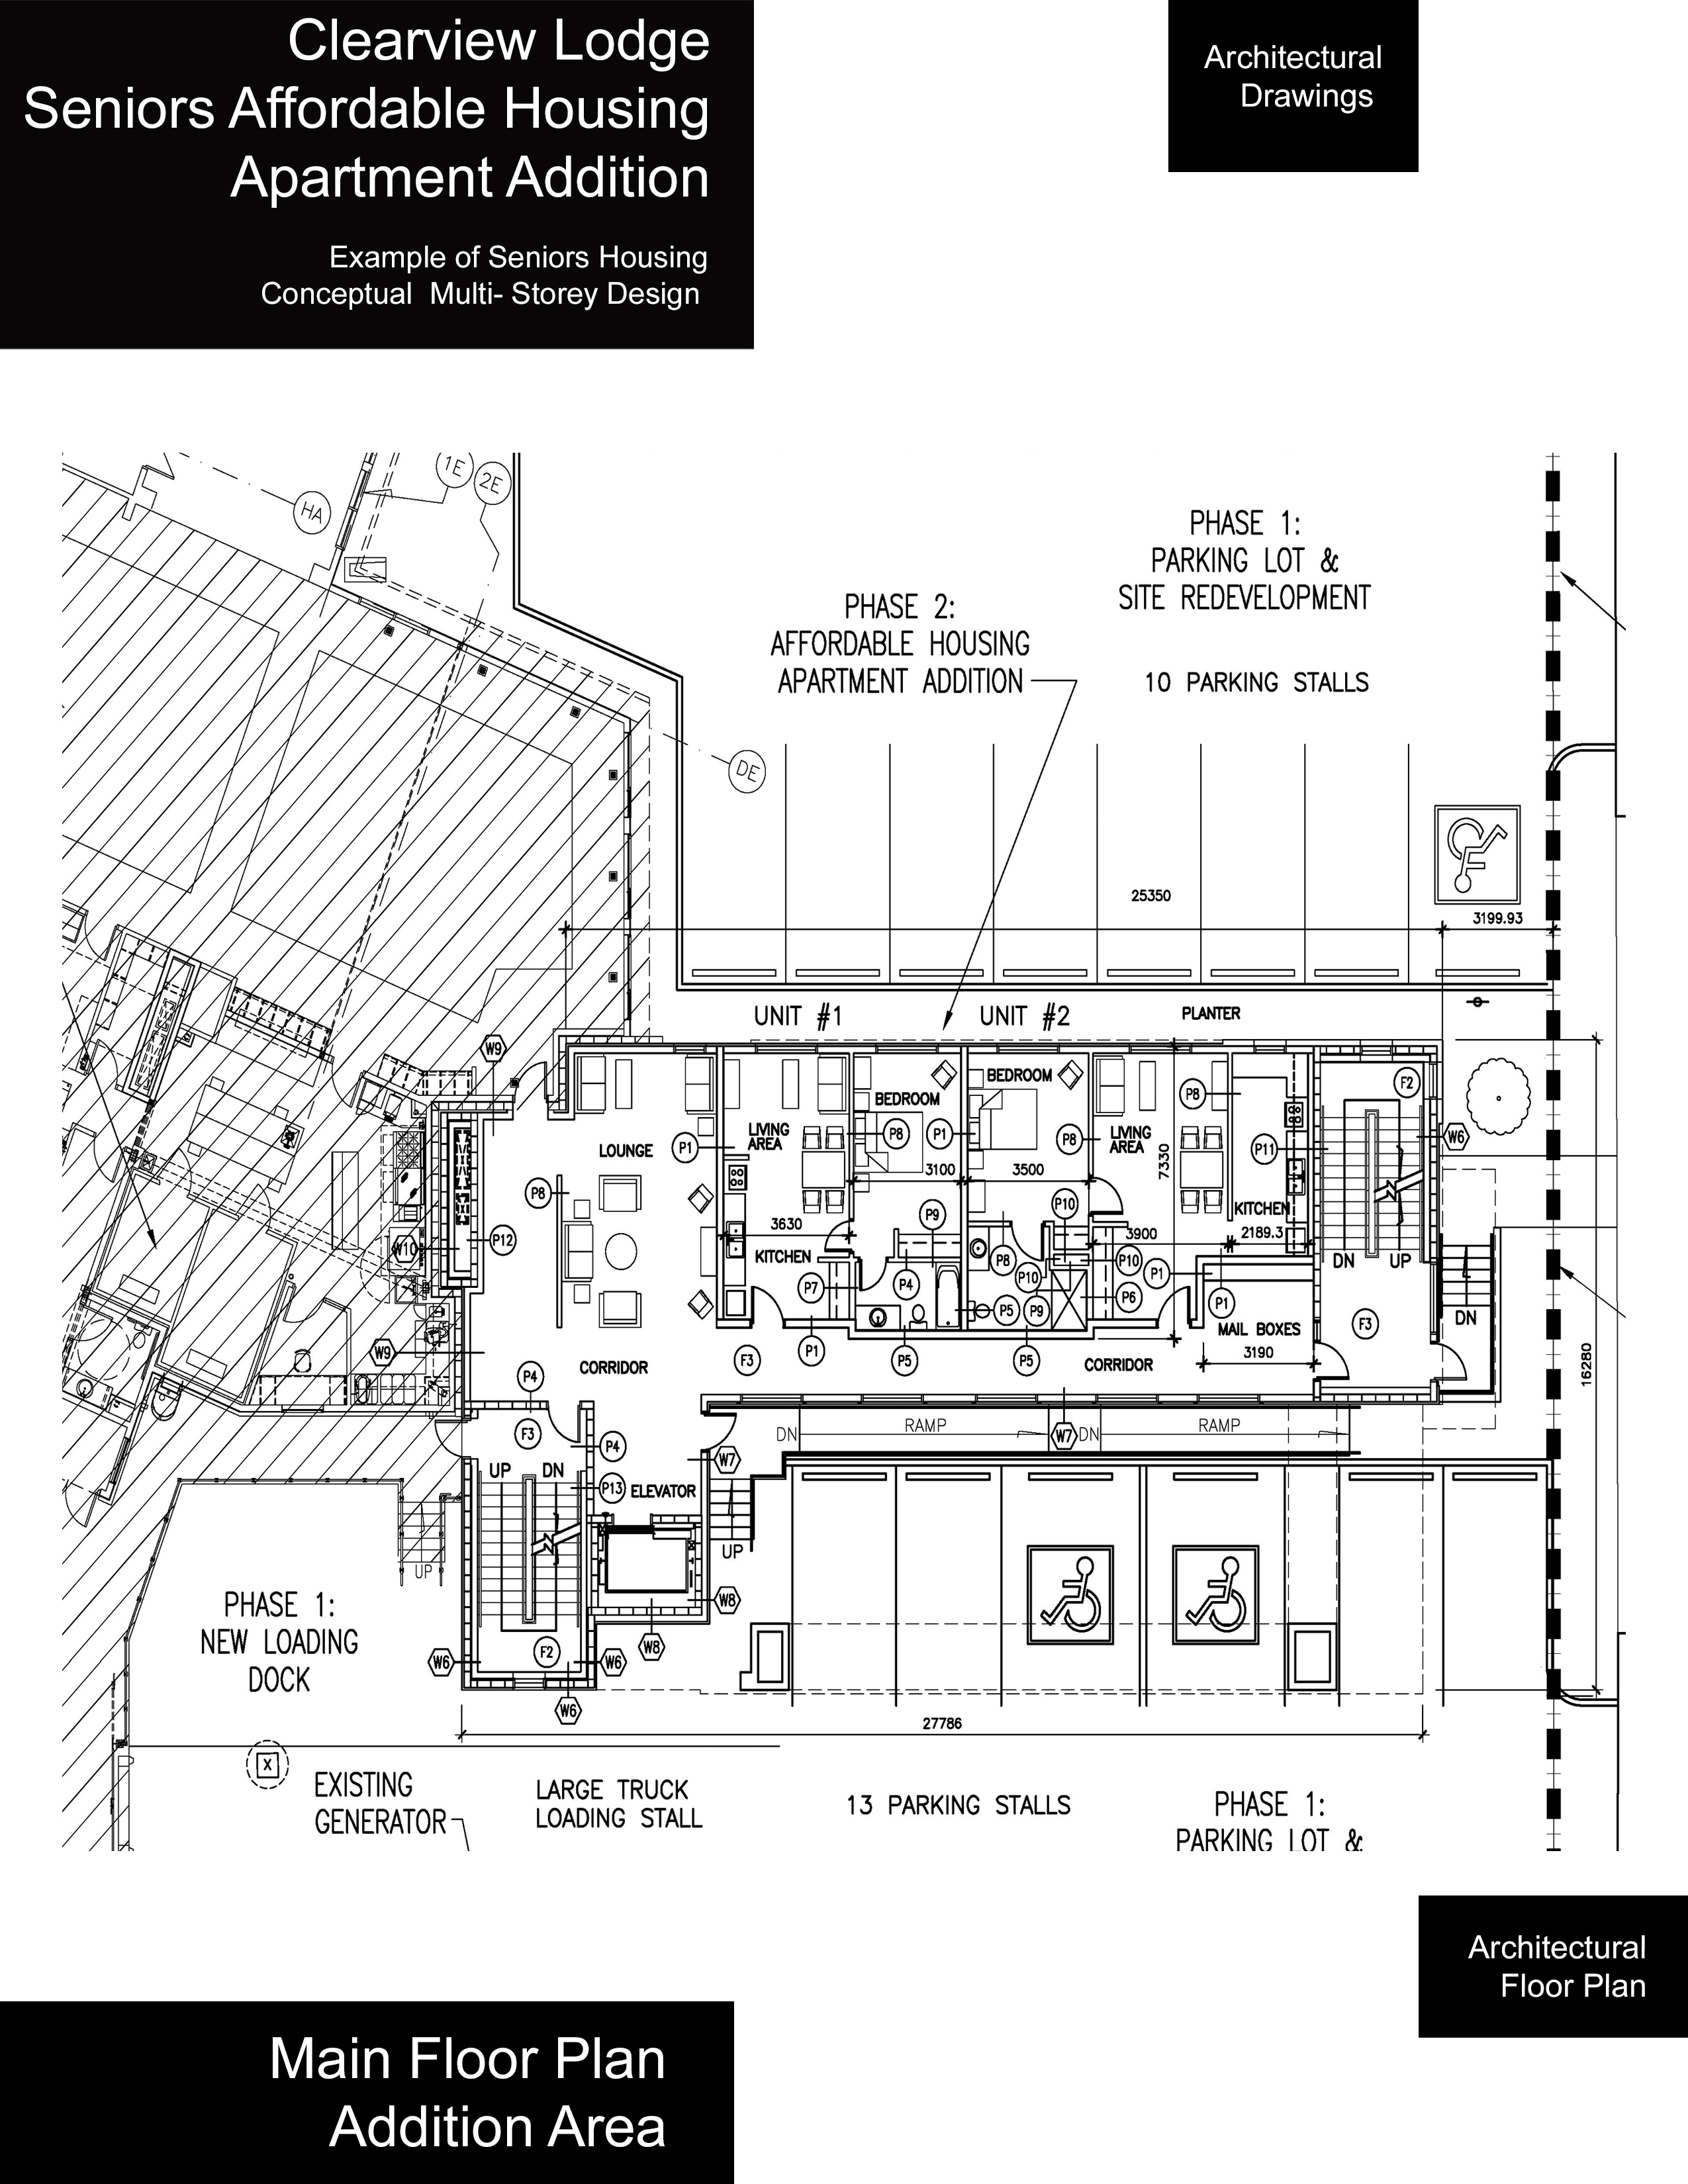 Clearview_Lodge_rApartment_Additions_sheet_3.jpg